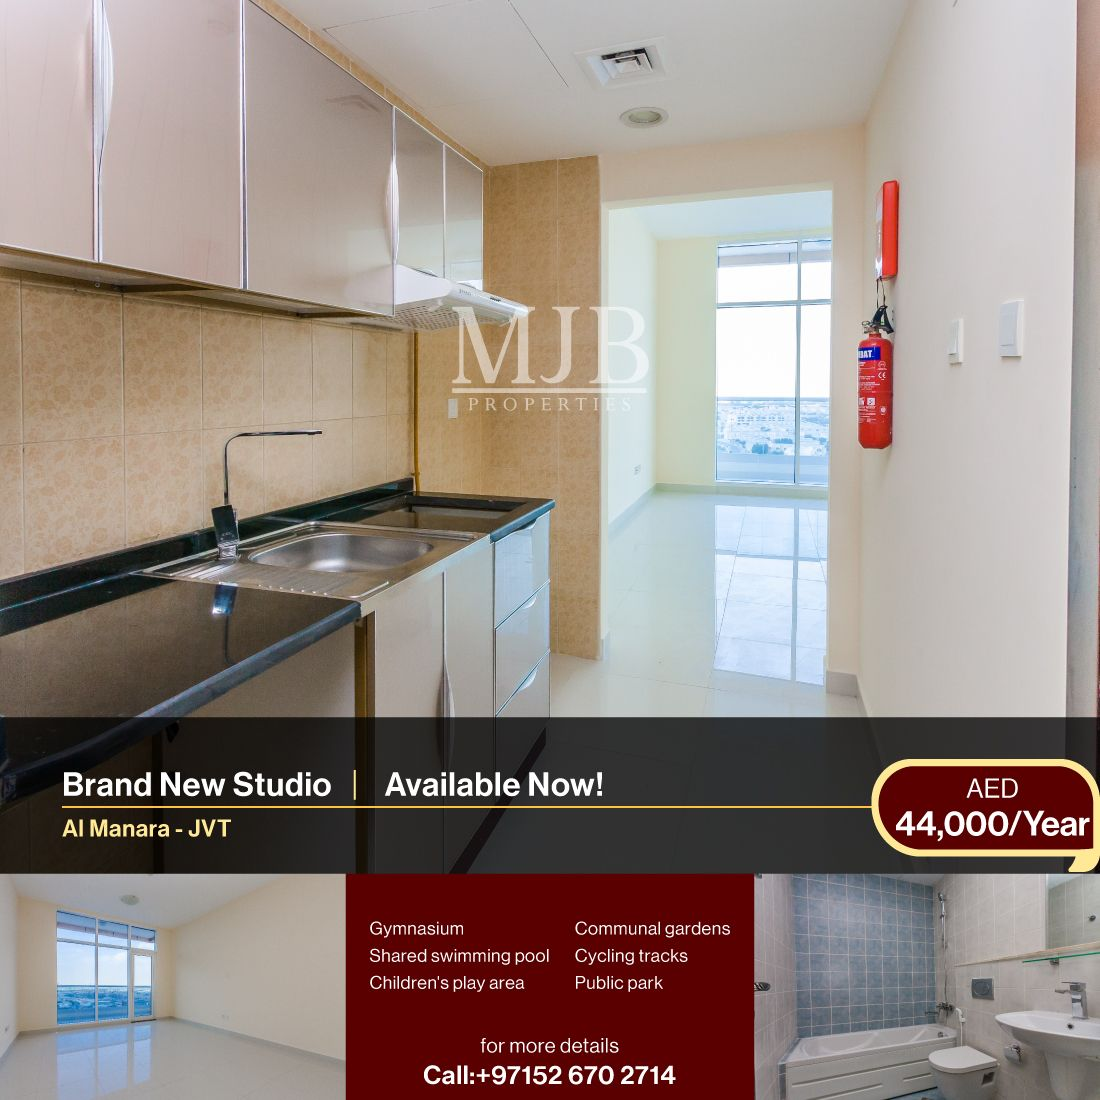 Studio Apartment For Rent Zetland: Pin By MJB Properties On Hot Properties For Rent